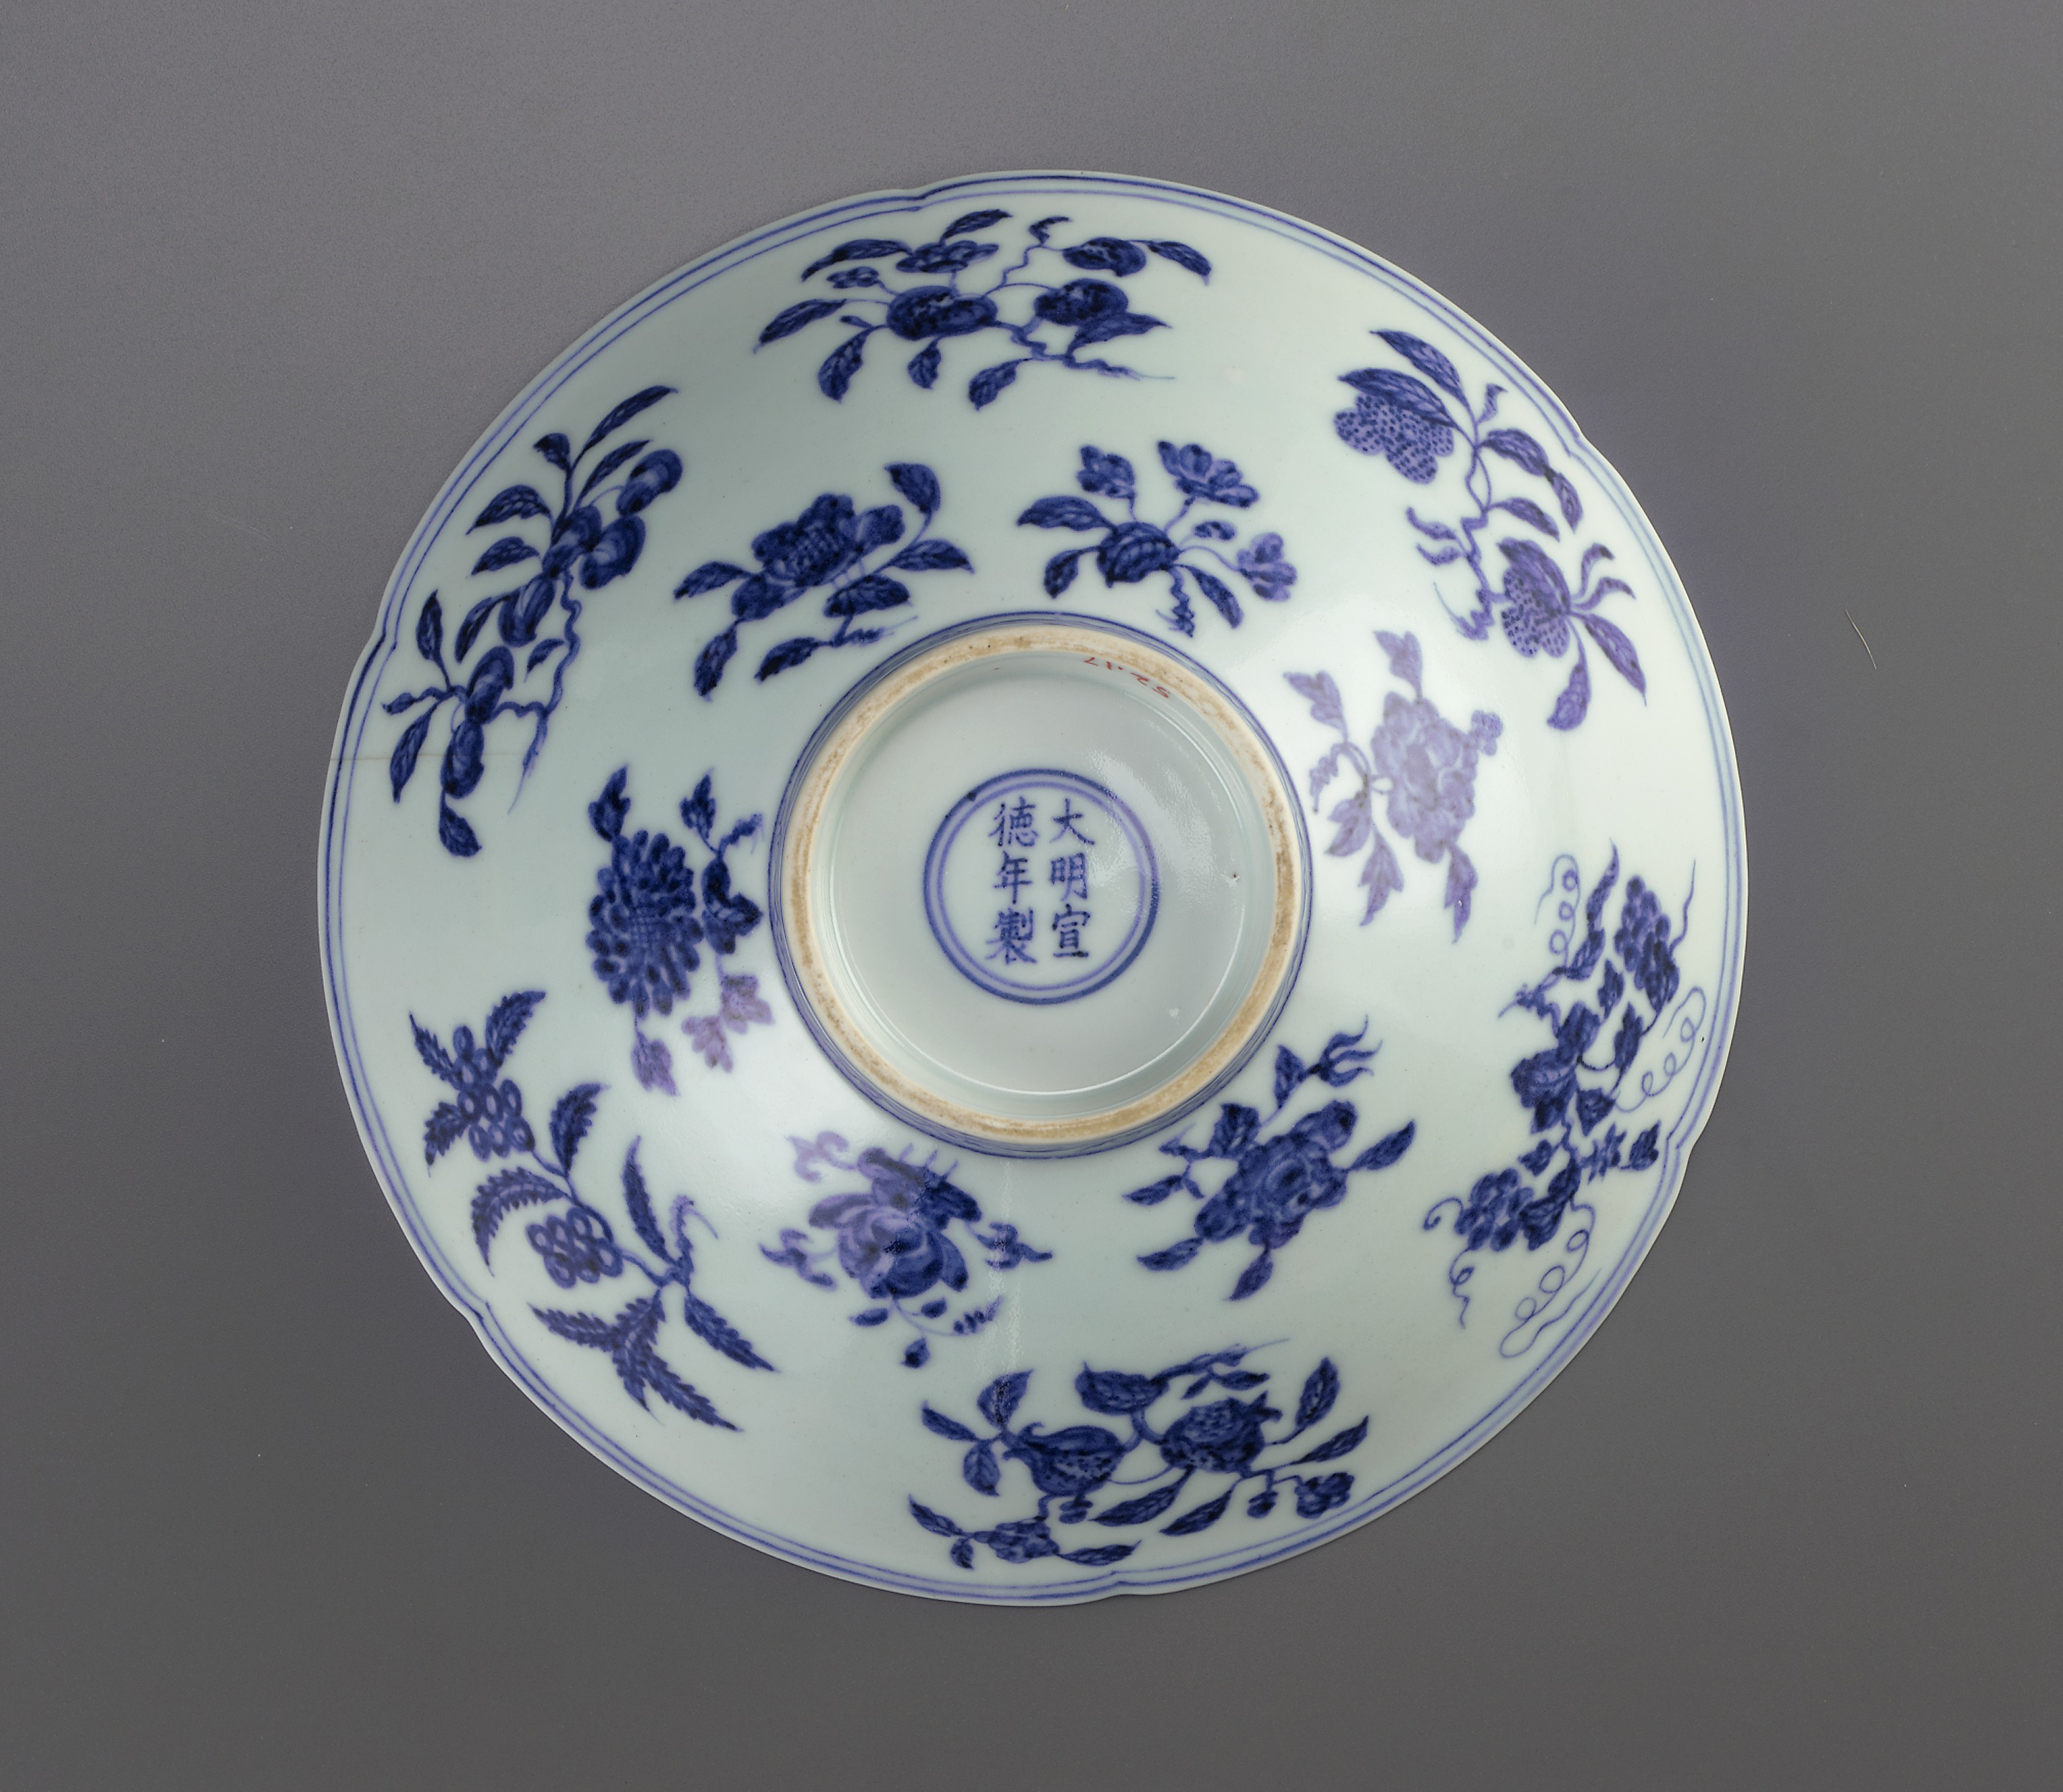 Ming dynasty alainruong page 2 blue and white bowl with foliate rim xuande mark and period 1426 1436 ming dynasty 1368 1644 jingdezhen jiangxi province reviewsmspy